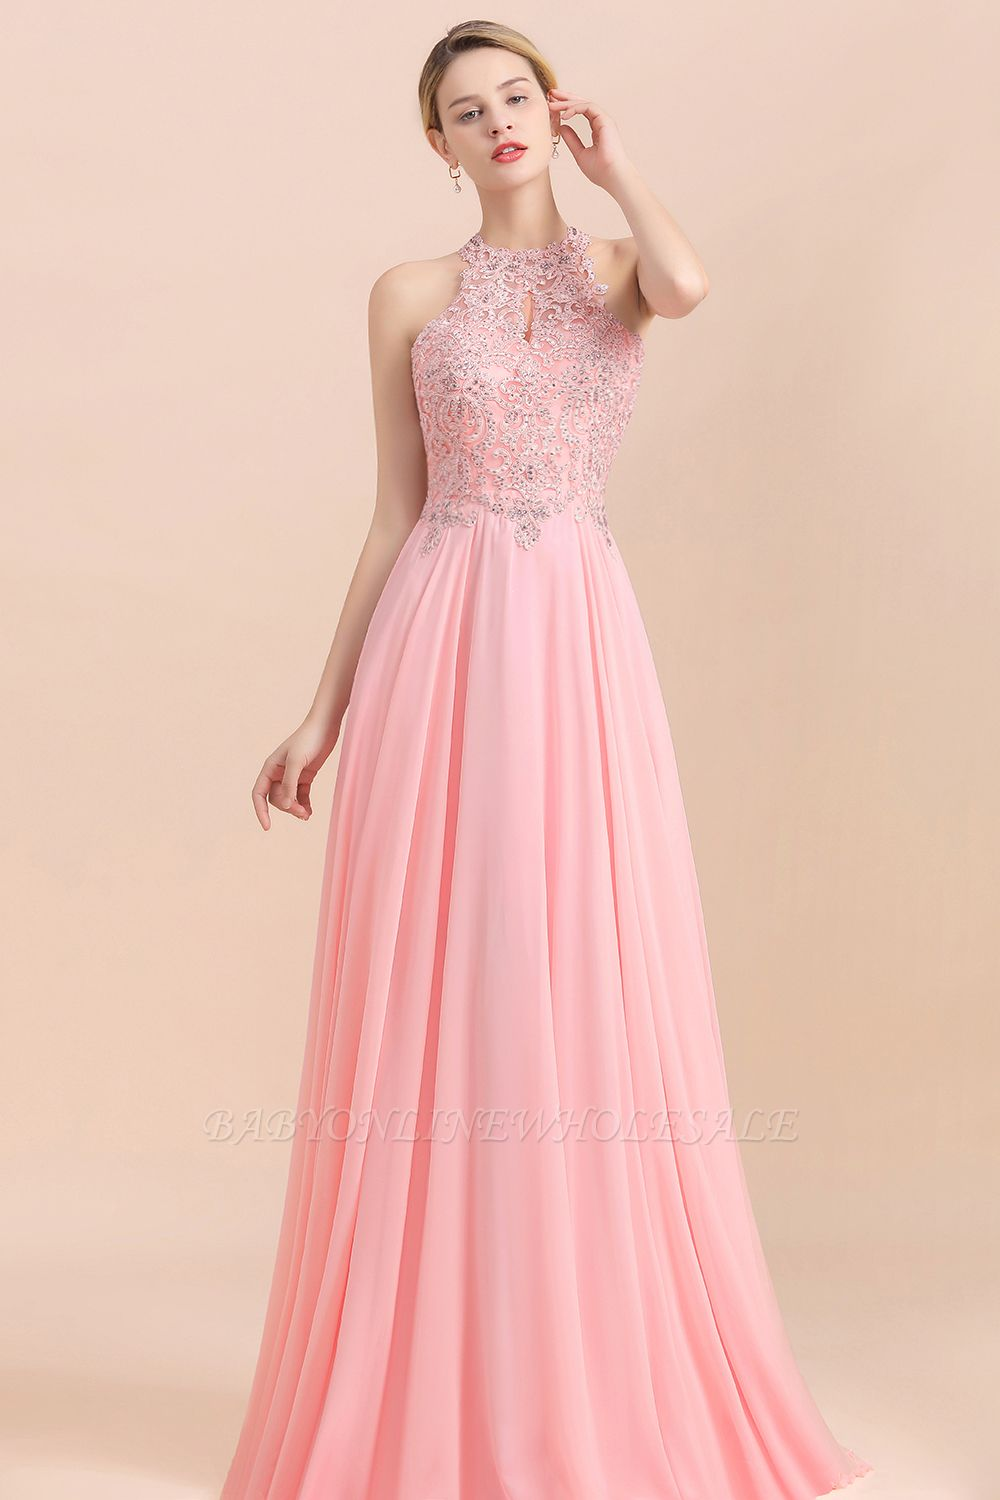 Modest Pink Pears Beaded A-line Halter Bridesmaid Dresses